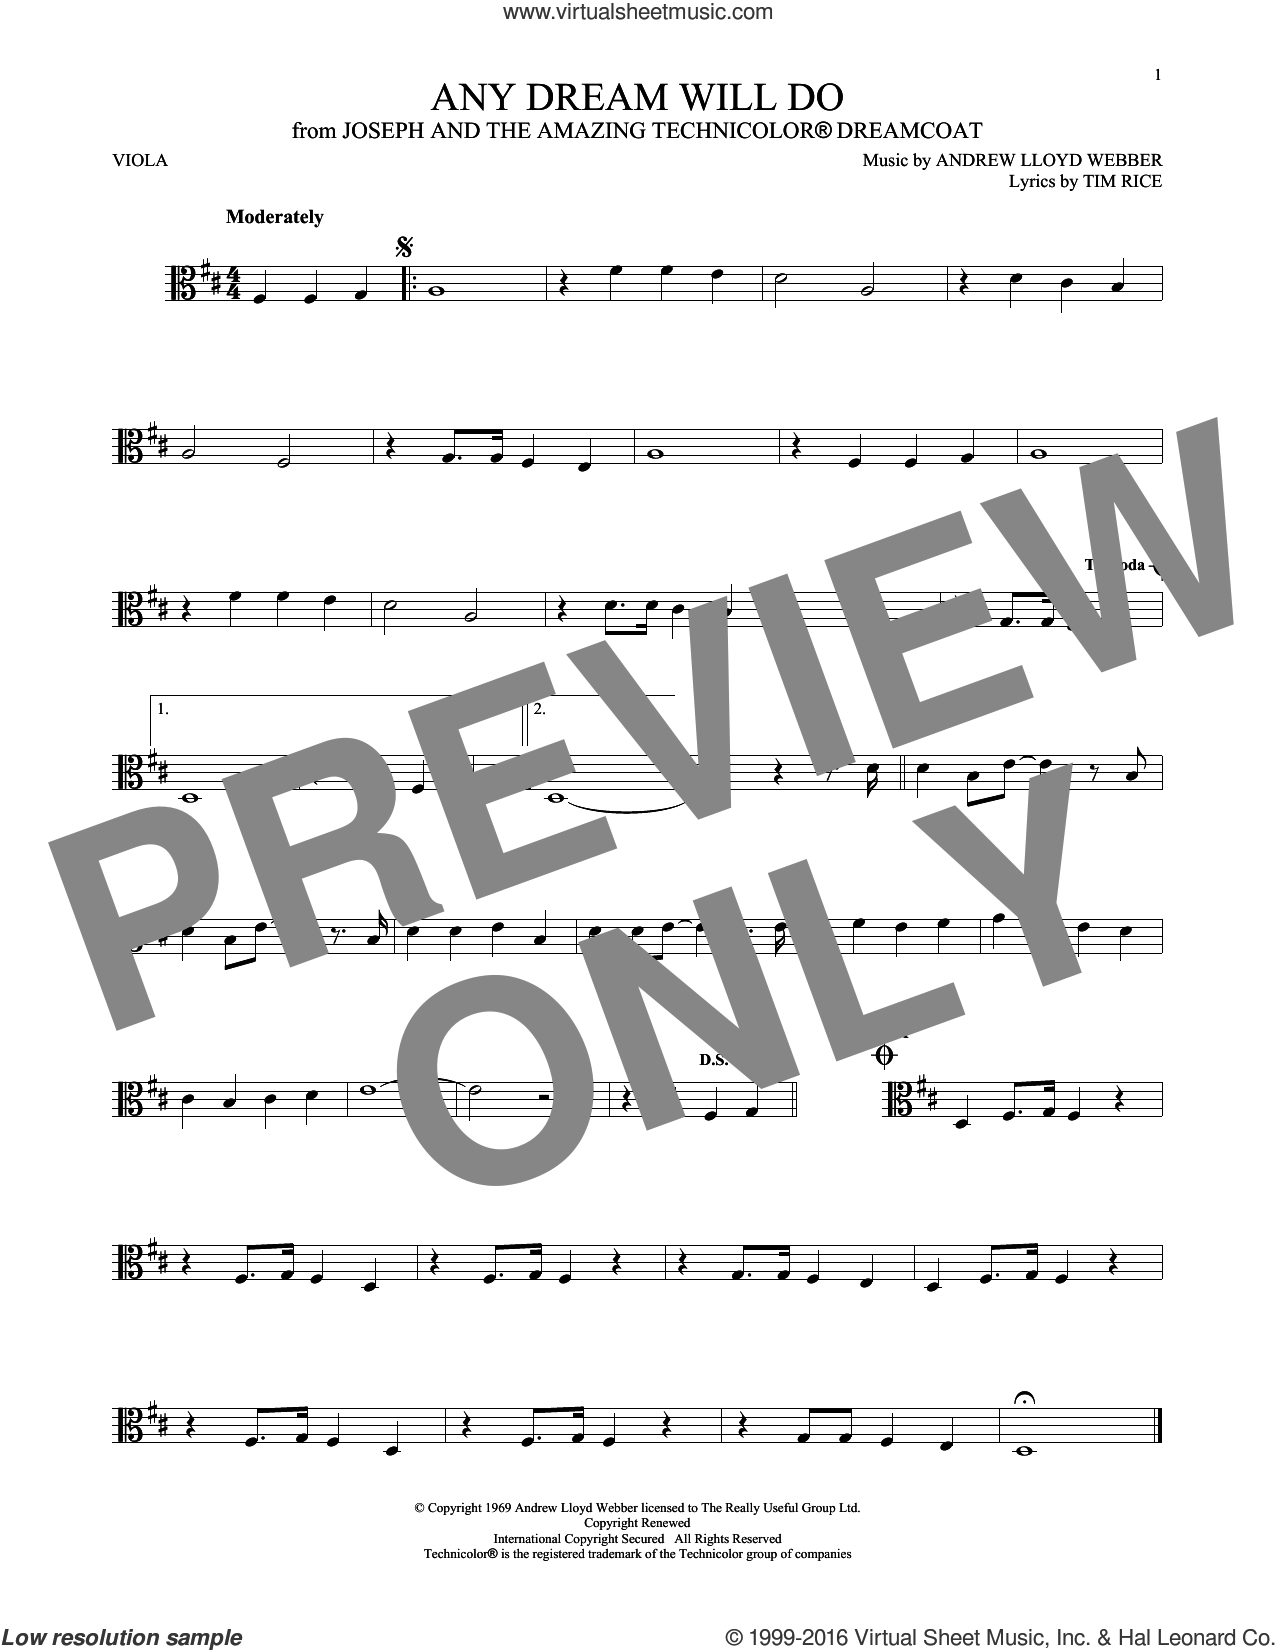 Any Dream Will Do sheet music for viola solo by Andrew Lloyd Webber, Andrew Lloyd Webber & Tim Rice and Tim Rice, intermediate skill level